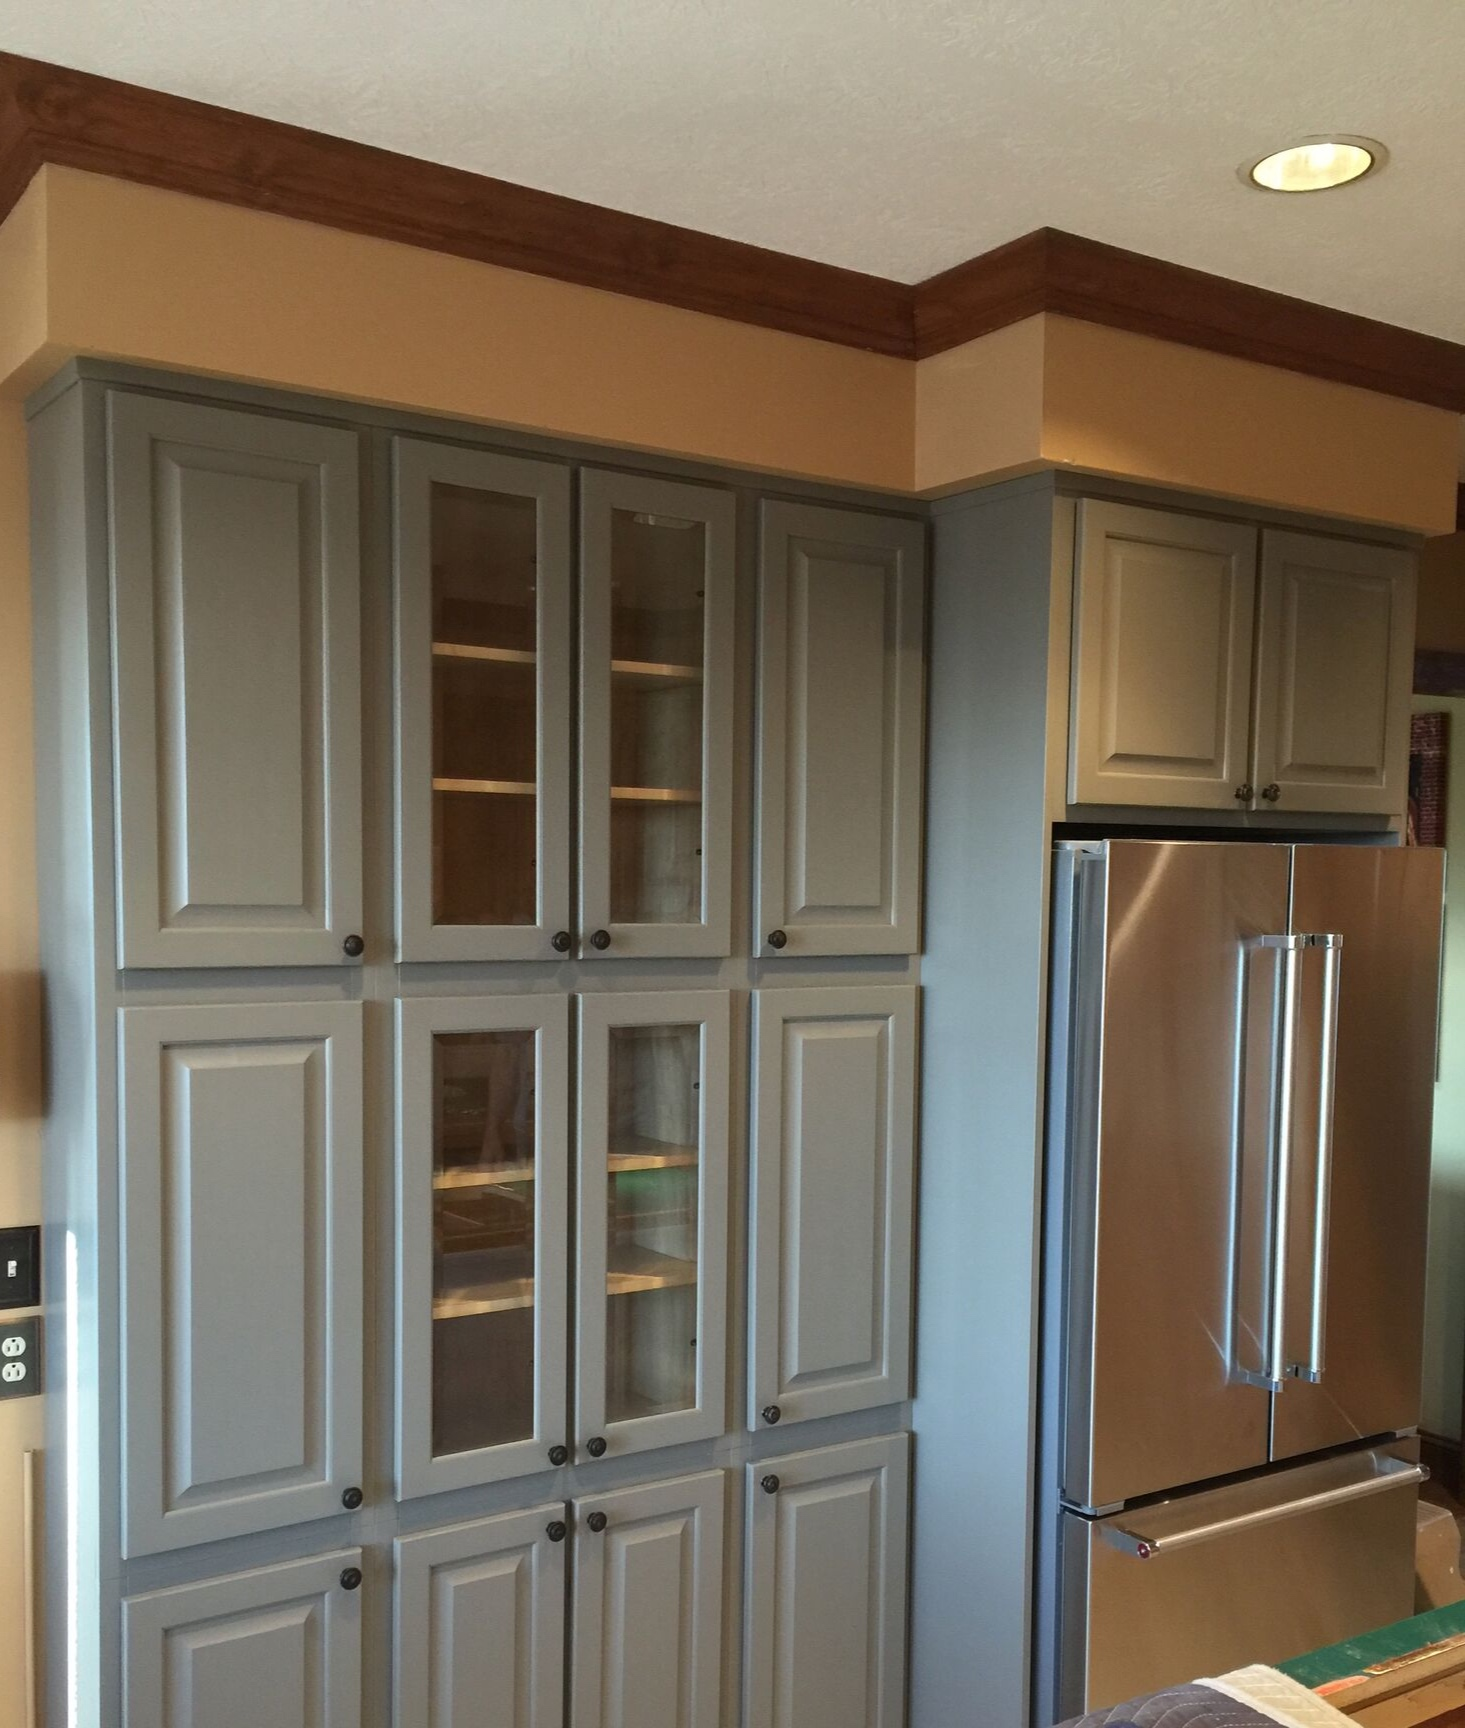 Cabinetry10.jpeg